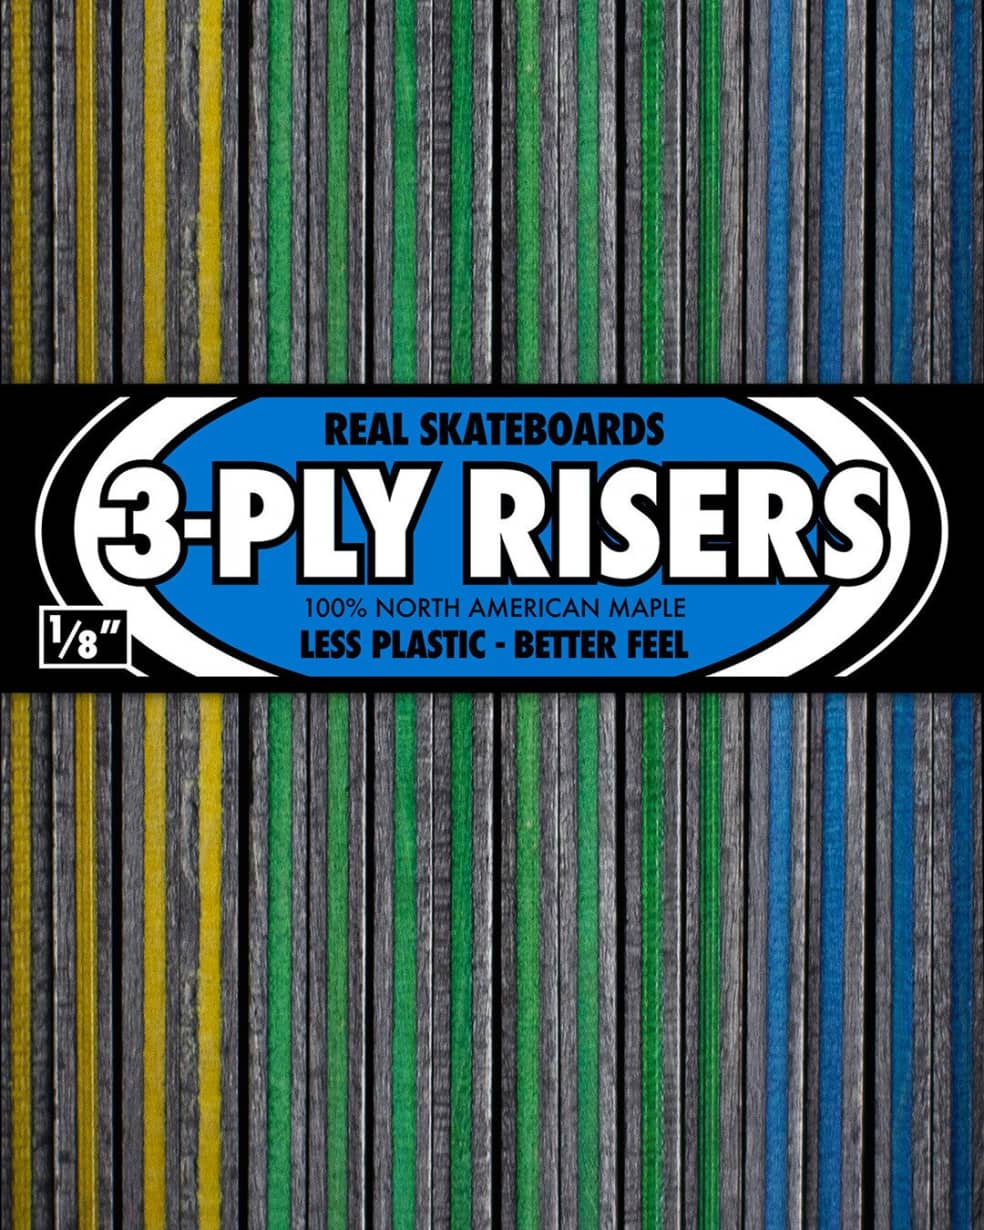 """Real Skateboards 3-ply Risers 1/8"""" 